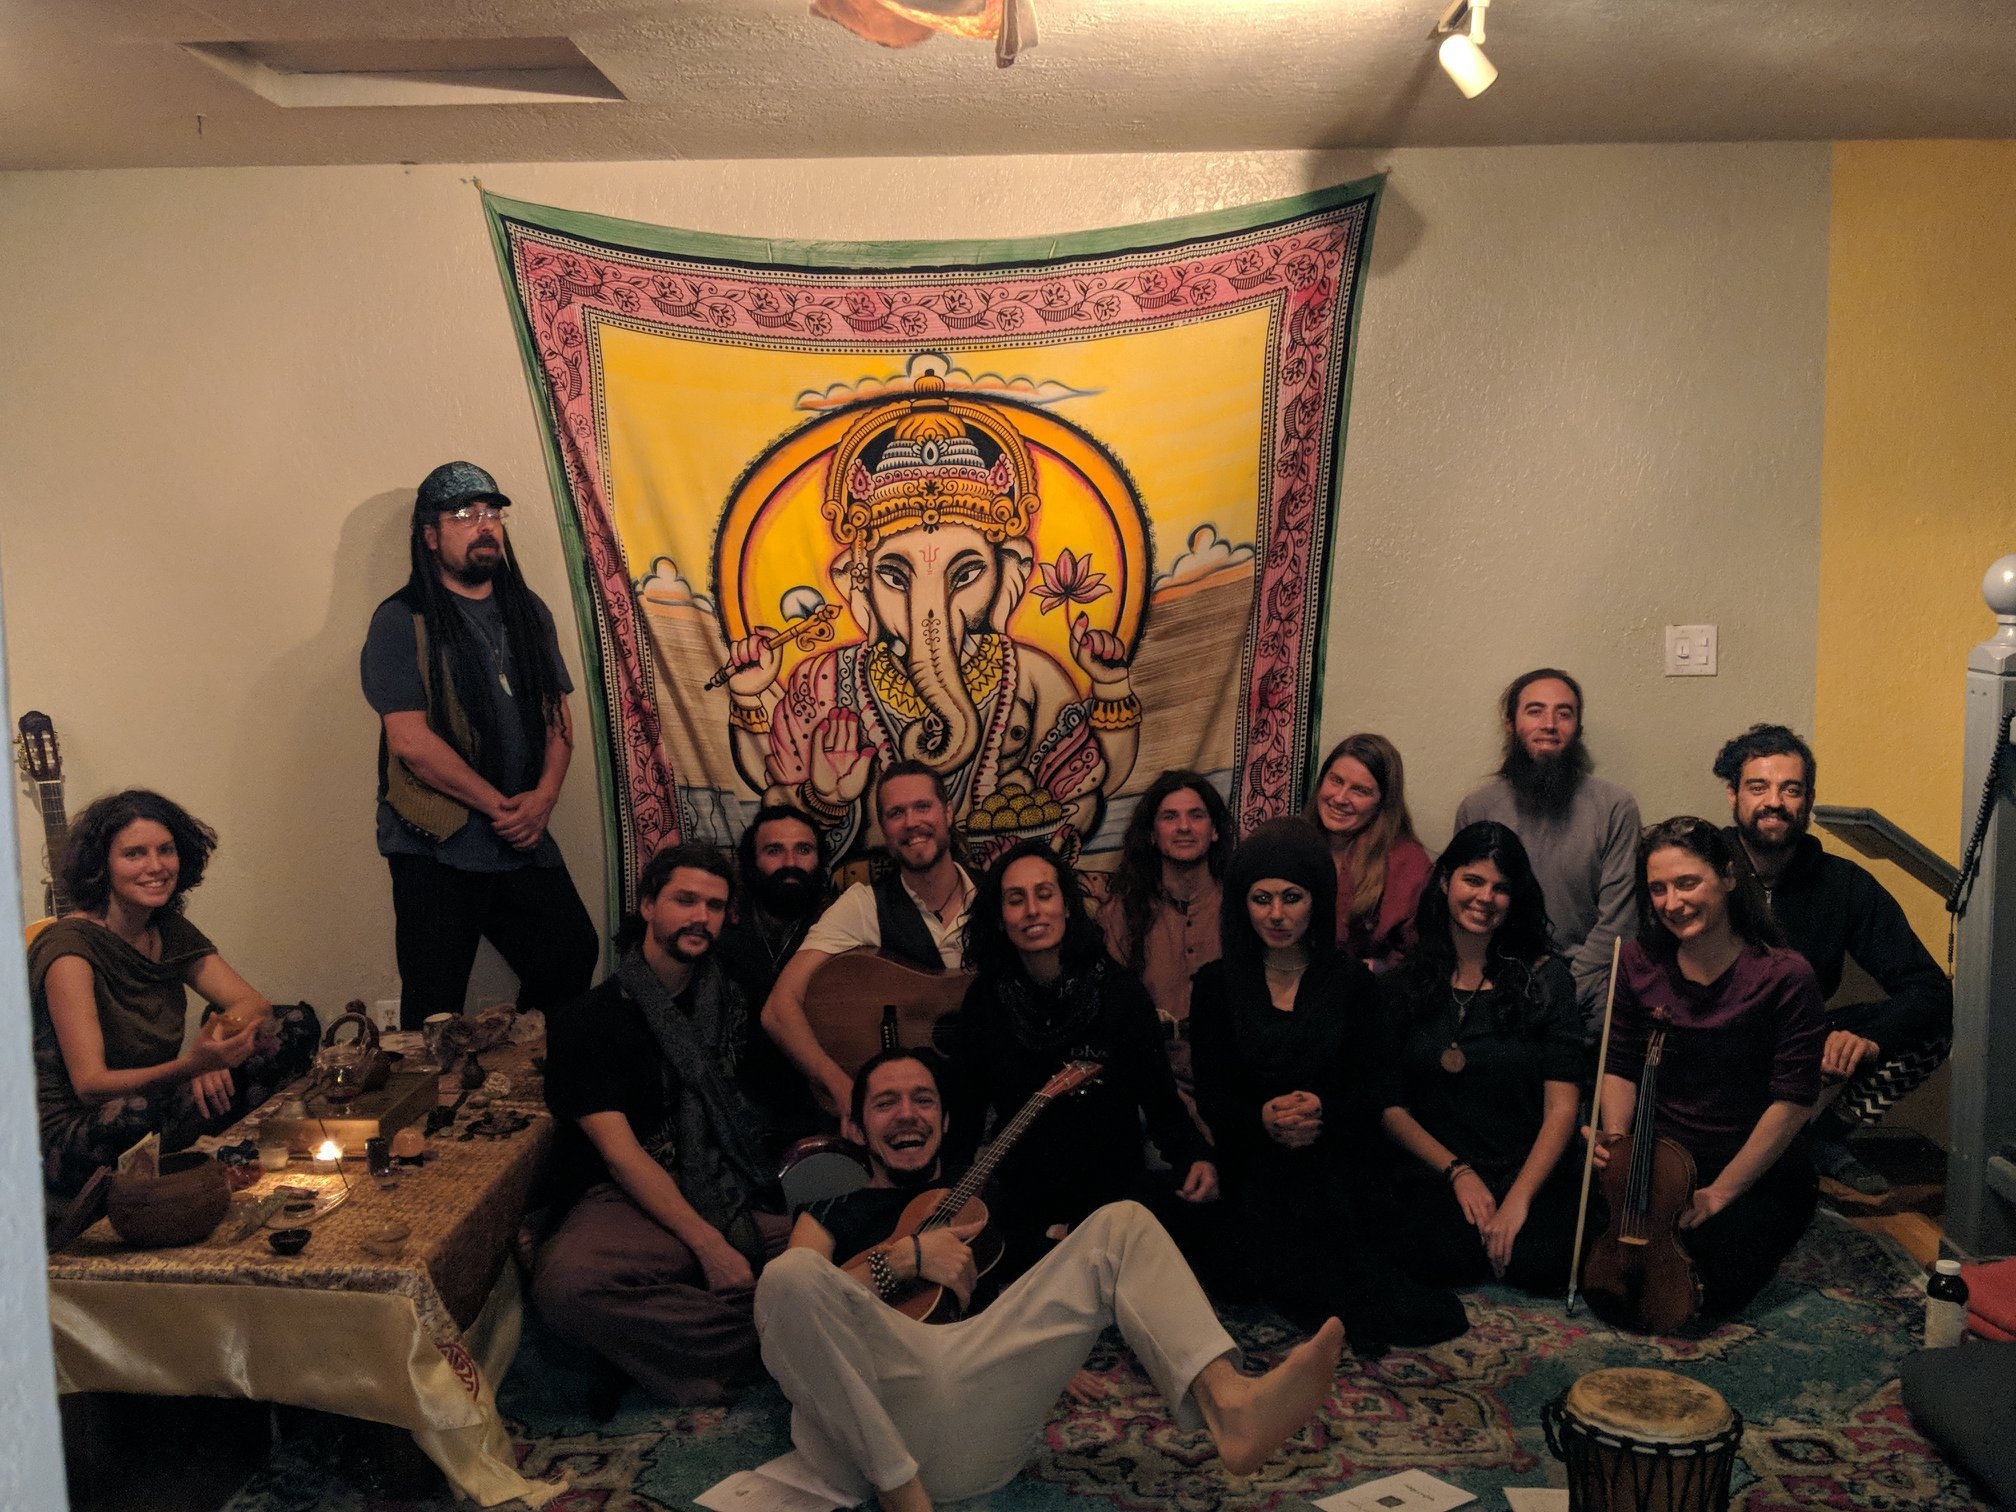 ^^ A glimpse into the warmth of Kirtans Past - our hearts are open, and our community is strong. ^^